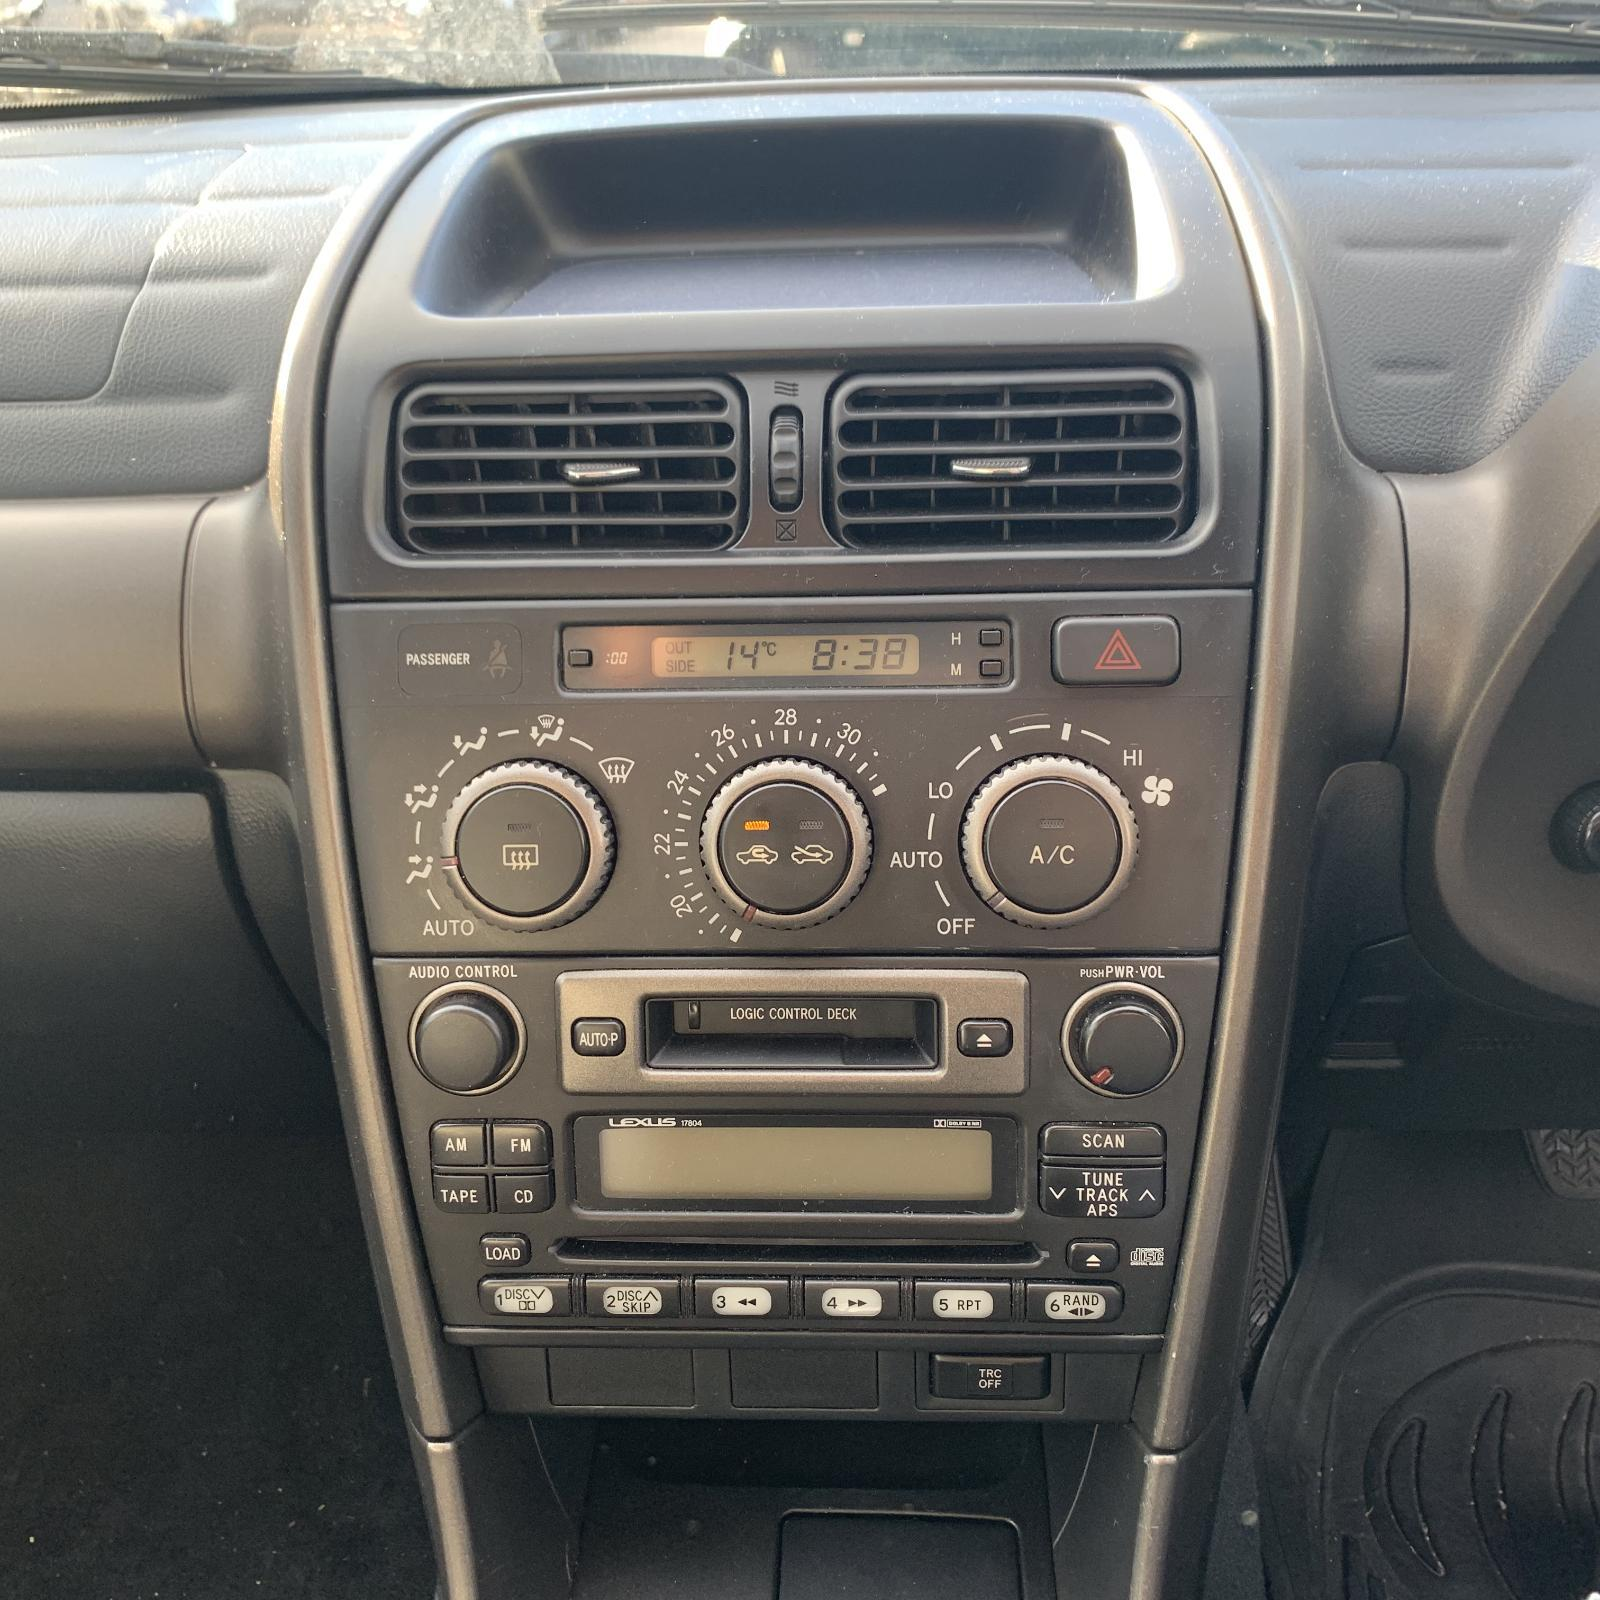 LEXUS IS200/IS300, Radio/Cd/Dvd/Sat/Tv, CD STACKER IN DASH, 01/98-10/05